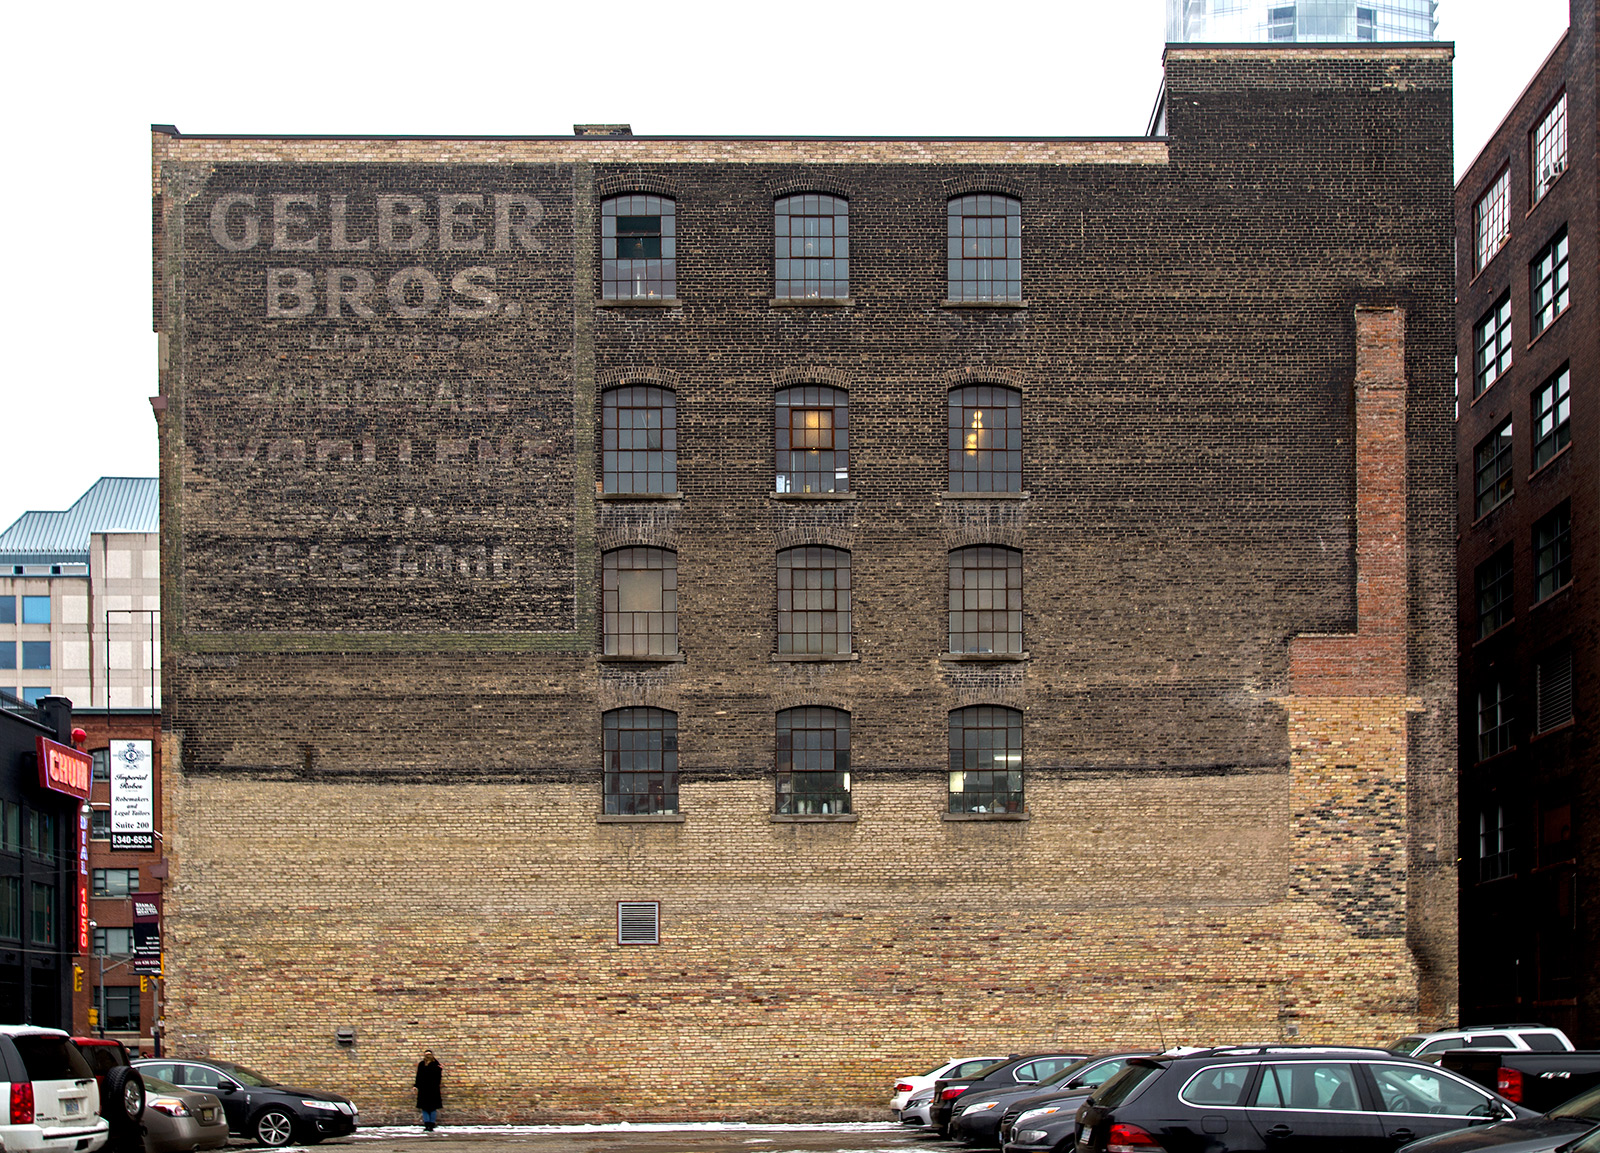 20140111. In the 1920s, 225 Richmond St. W was the Gelber Brothers Wholesale Woollens & Yard Goods warehouse.